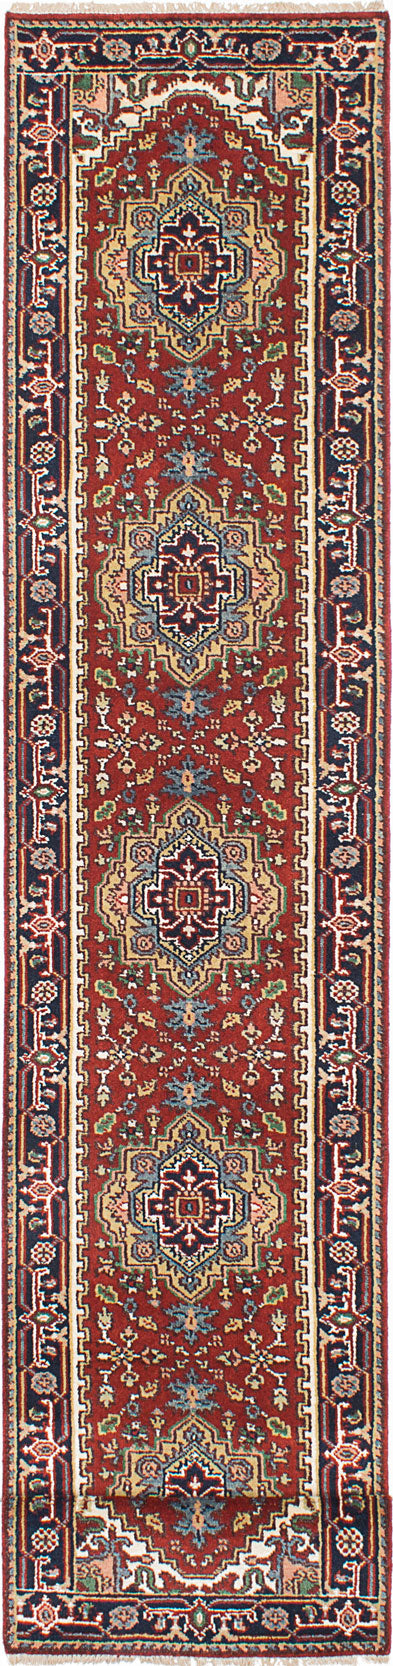 "Hand-knotted Indian Floral  Traditional Serapi-Heritage Runner rug  Dark Orange 2'7 x 19'6"" """